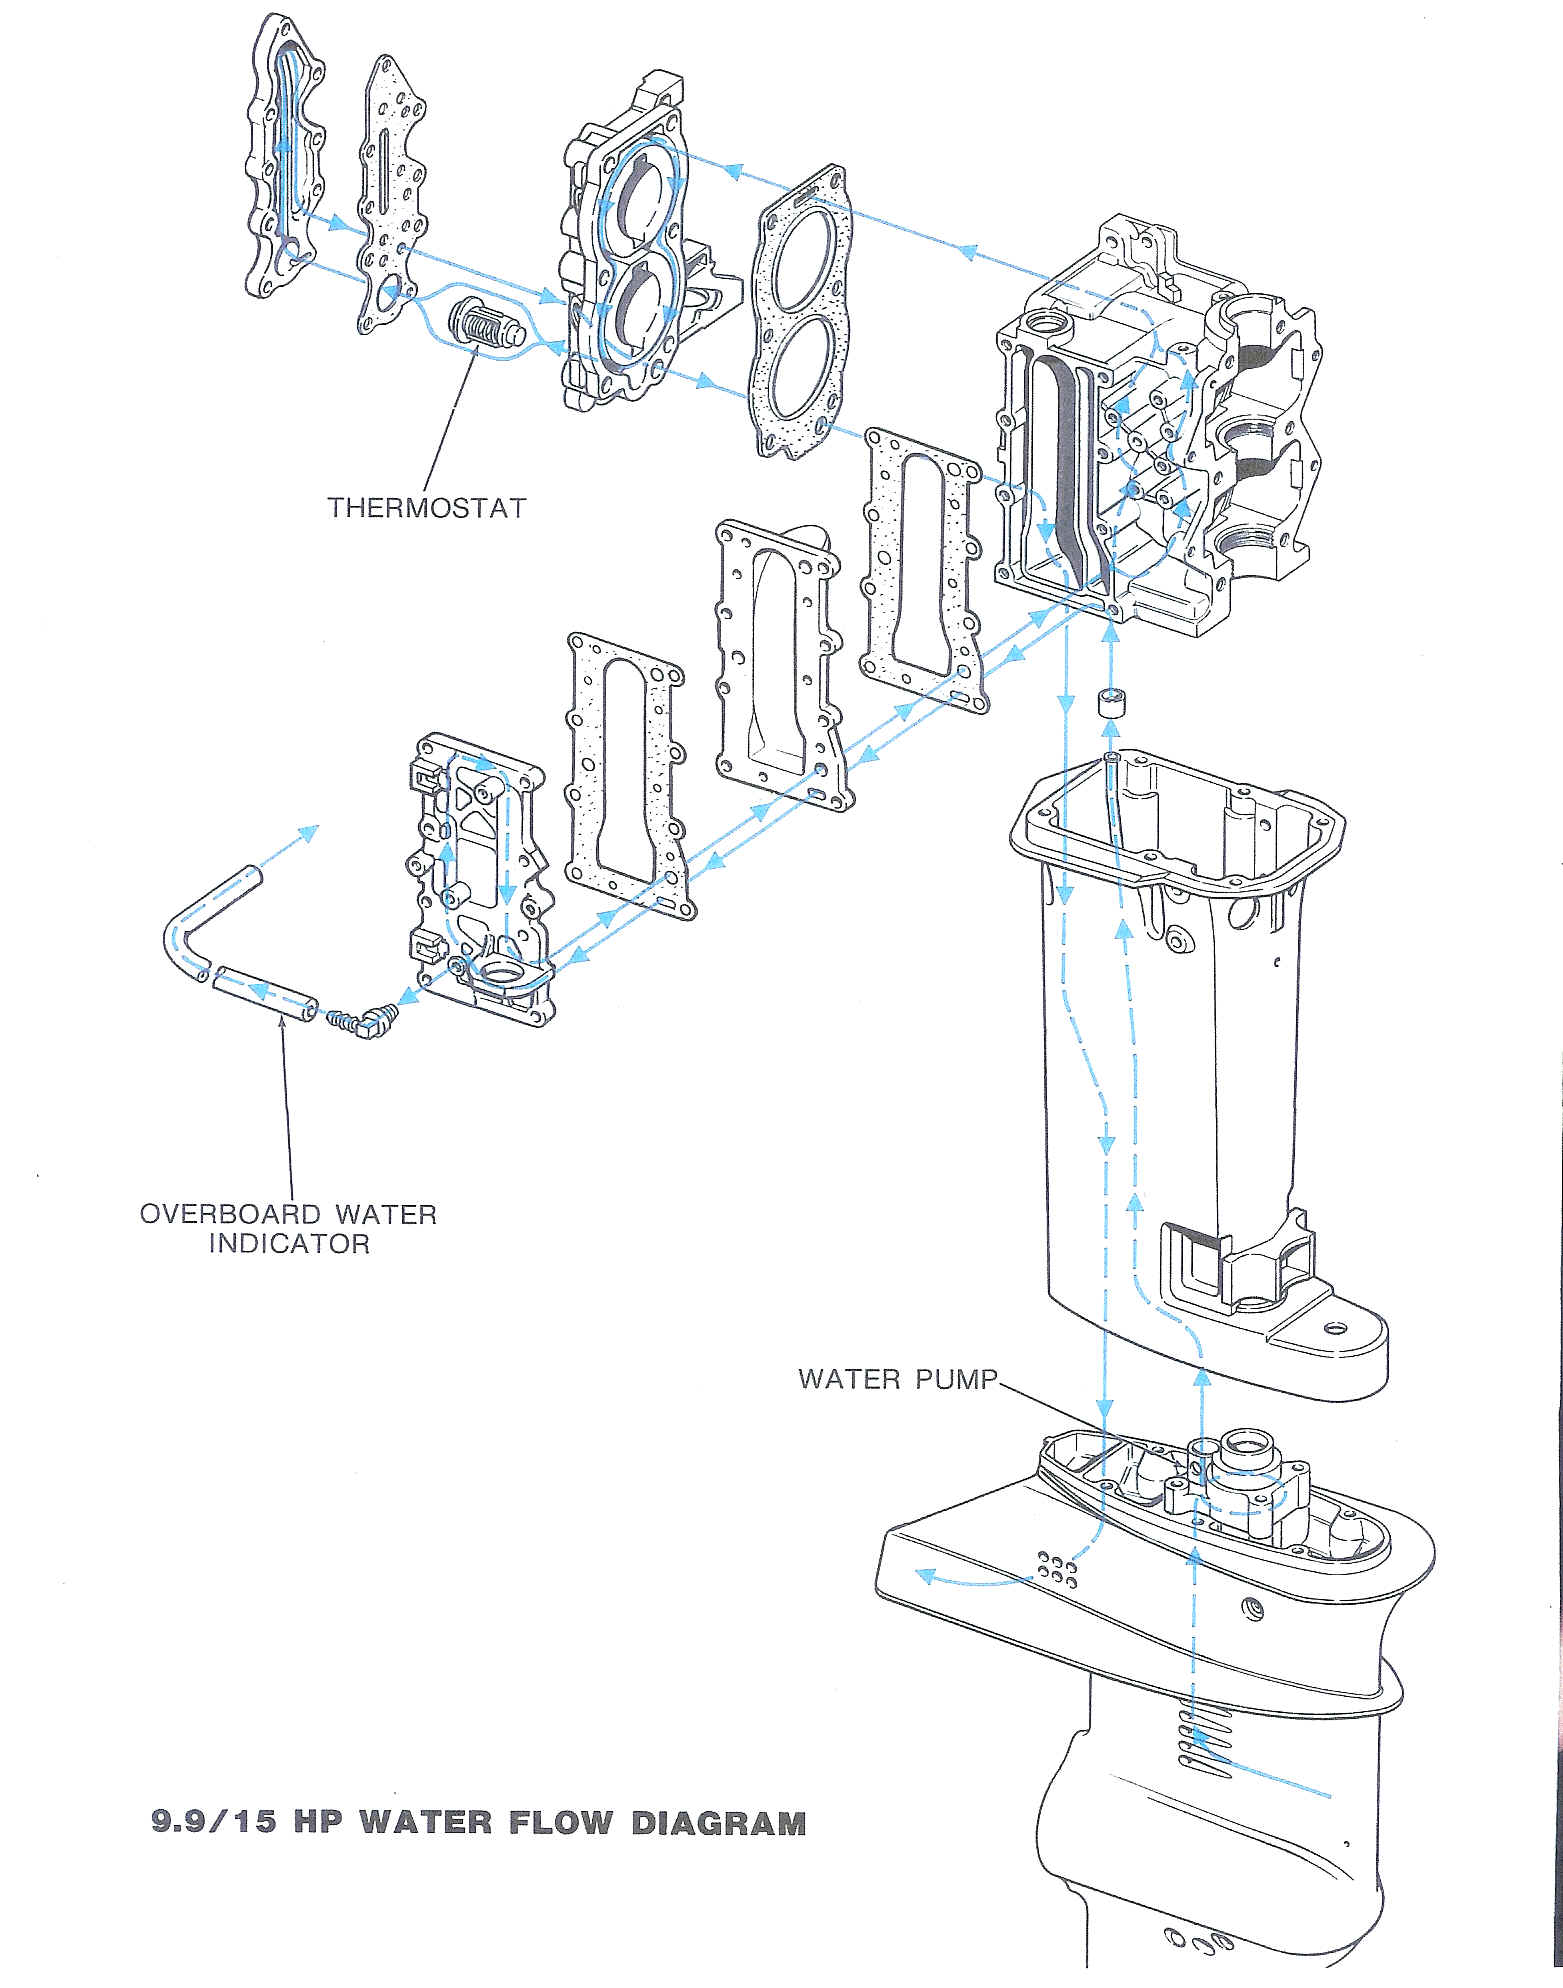 Outboard Engine Diagram likewise Mercury furthermore 1956 Mercury Engine Diagram additionally Yamaha Outboard Tach Wiring Diagram further Mariner Outboard Motor Wiring Diagram. on mercury 115 outboard trim wiring